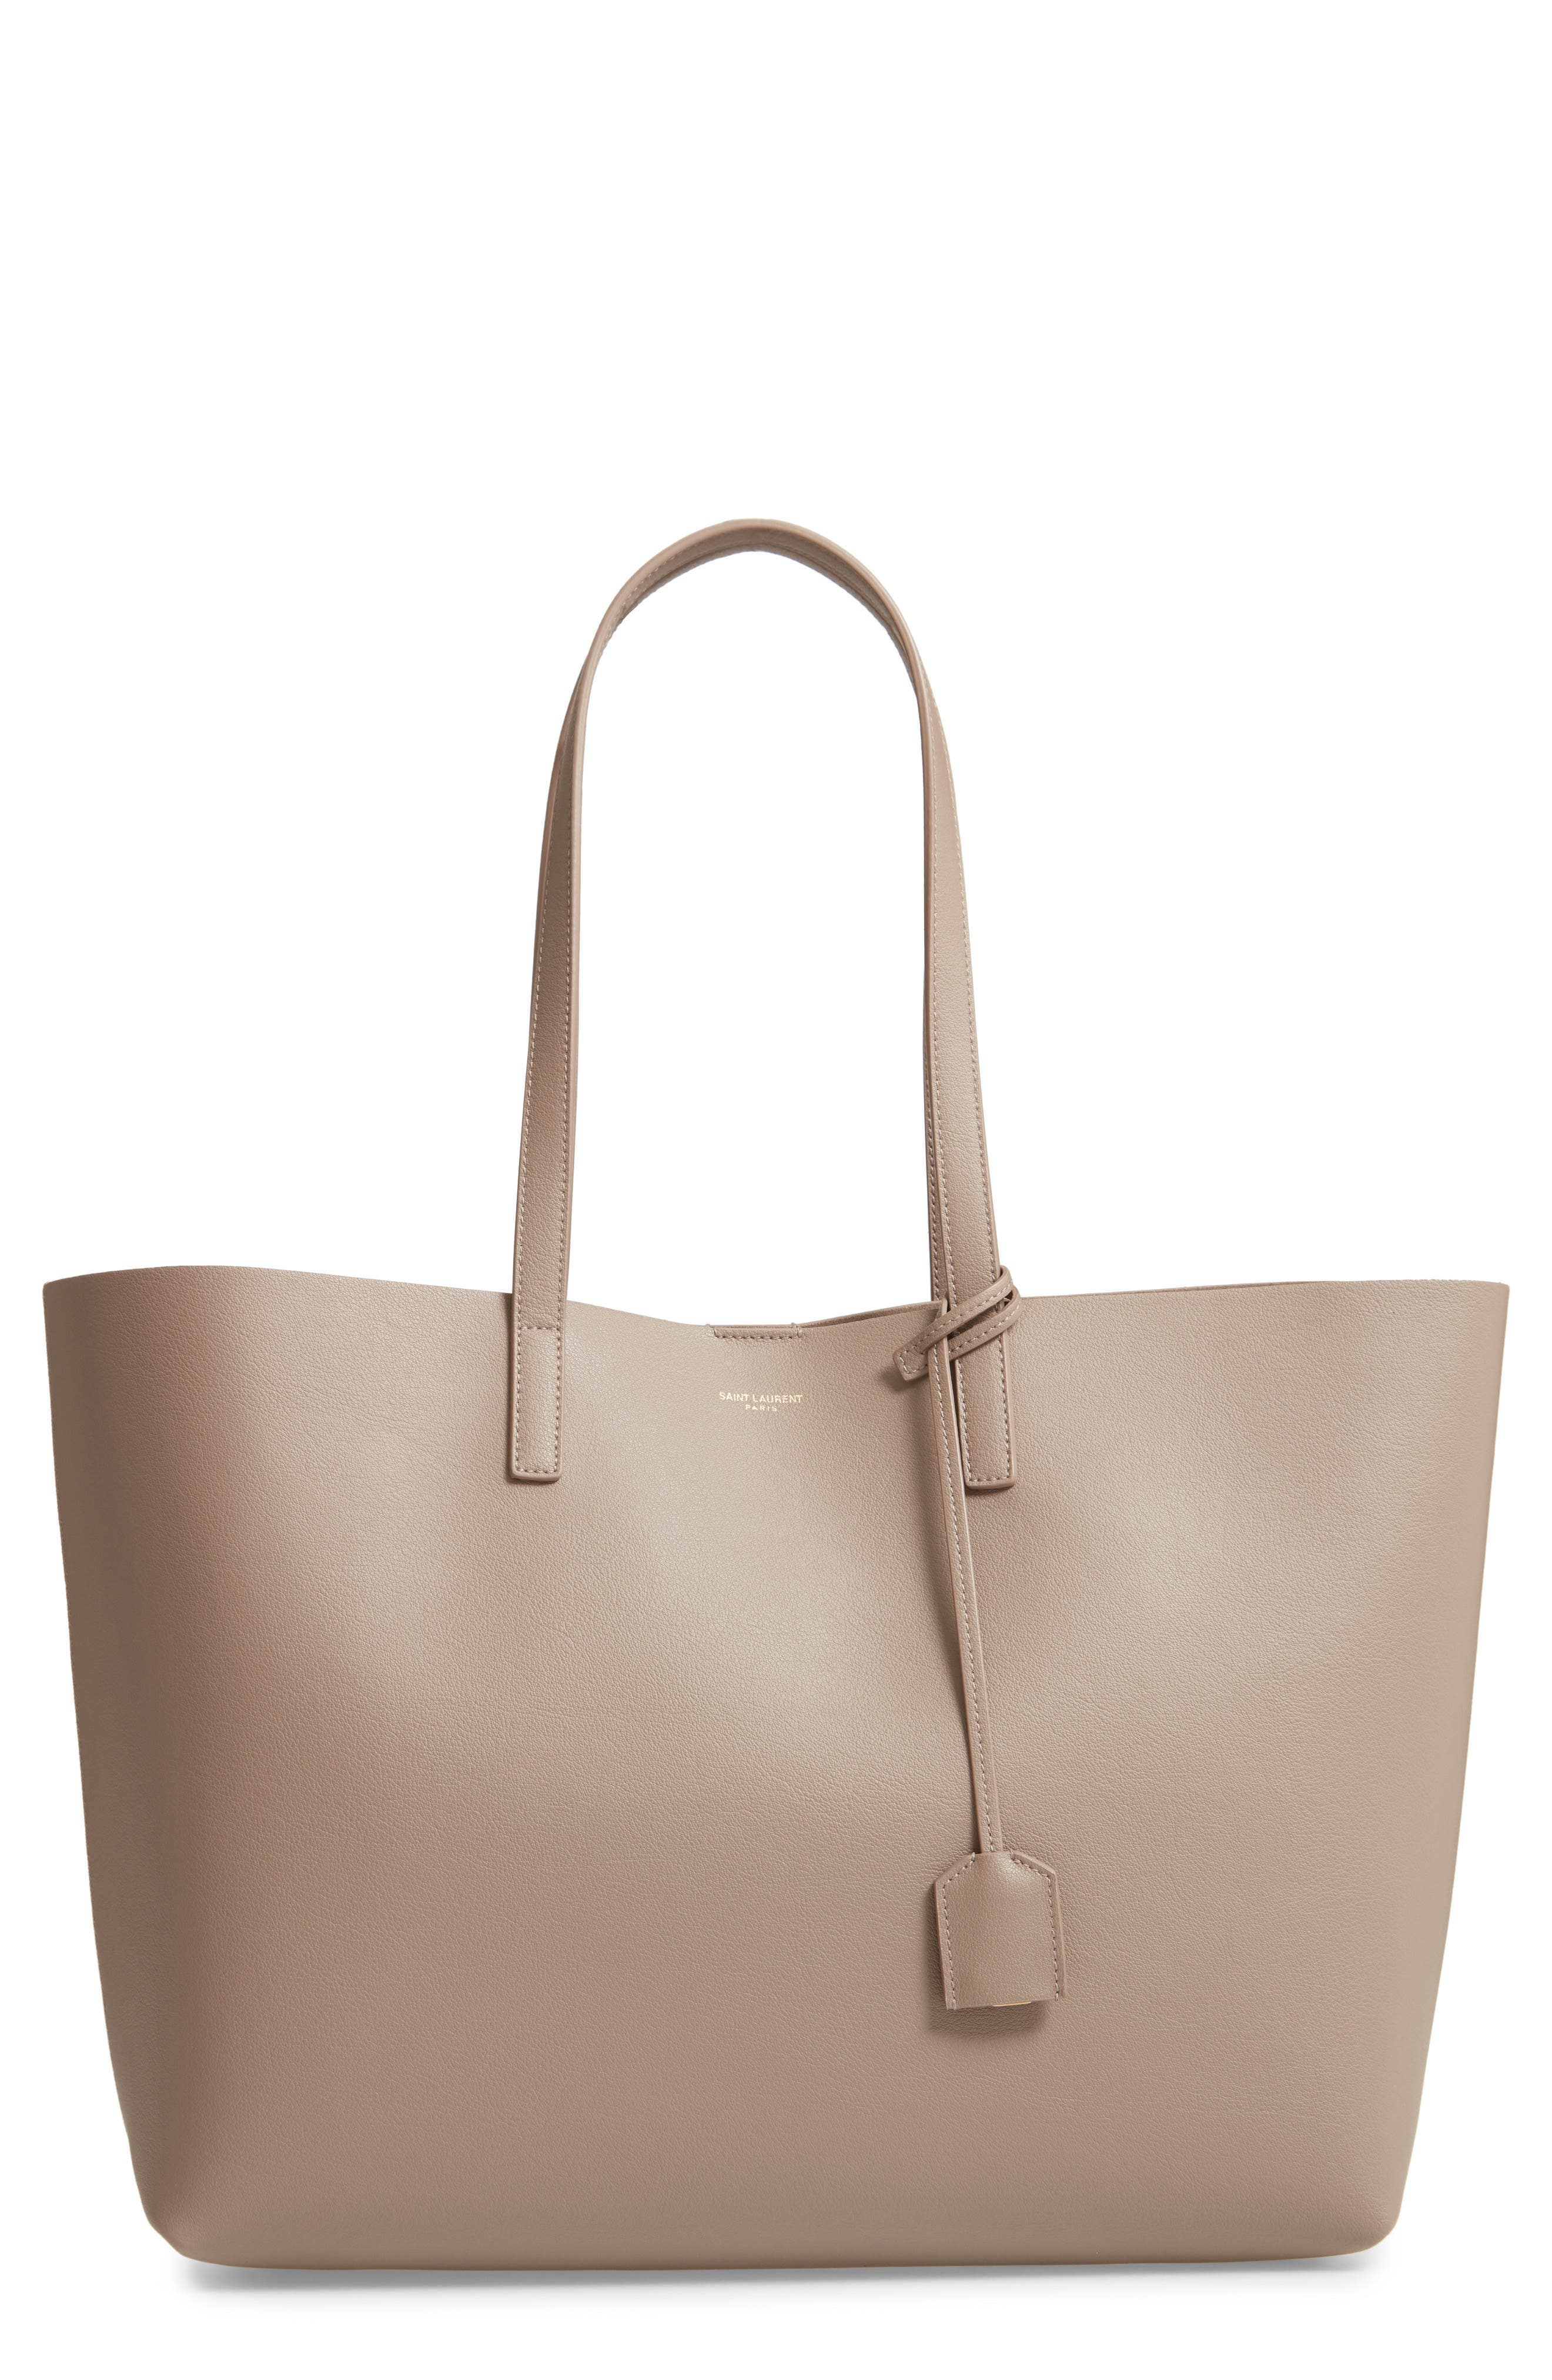 'Shopping' Leather Tote,                             Main thumbnail 1, color,                             Mink